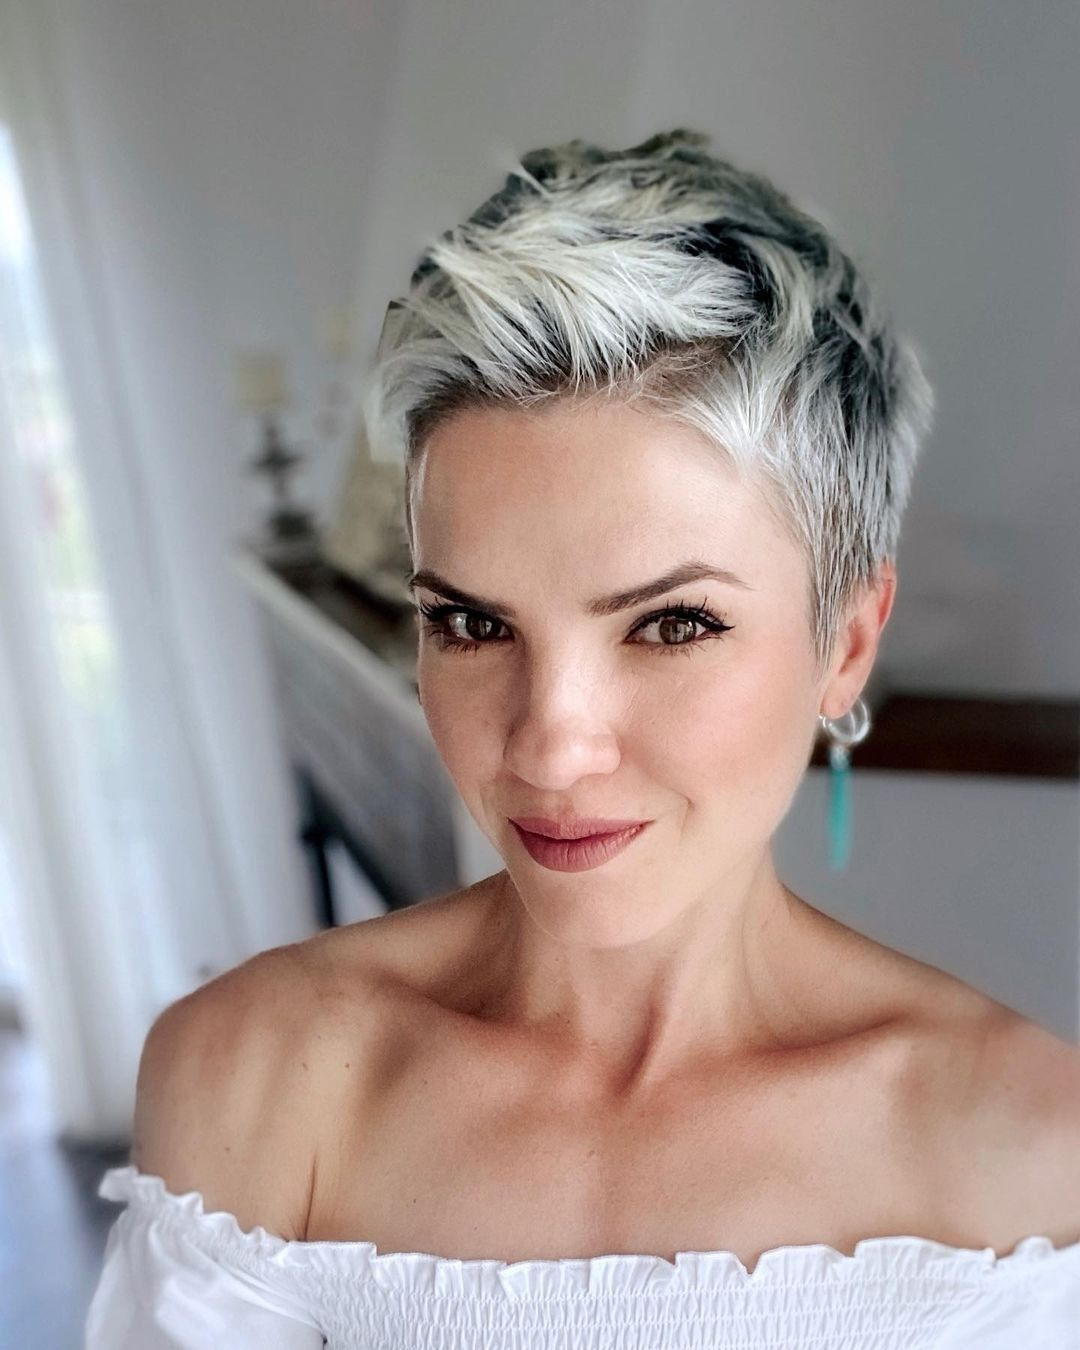 100 Short Haircut Styles for Over 60 Women in 2021 08f55b4bfc2f5989deb494443b222c9e